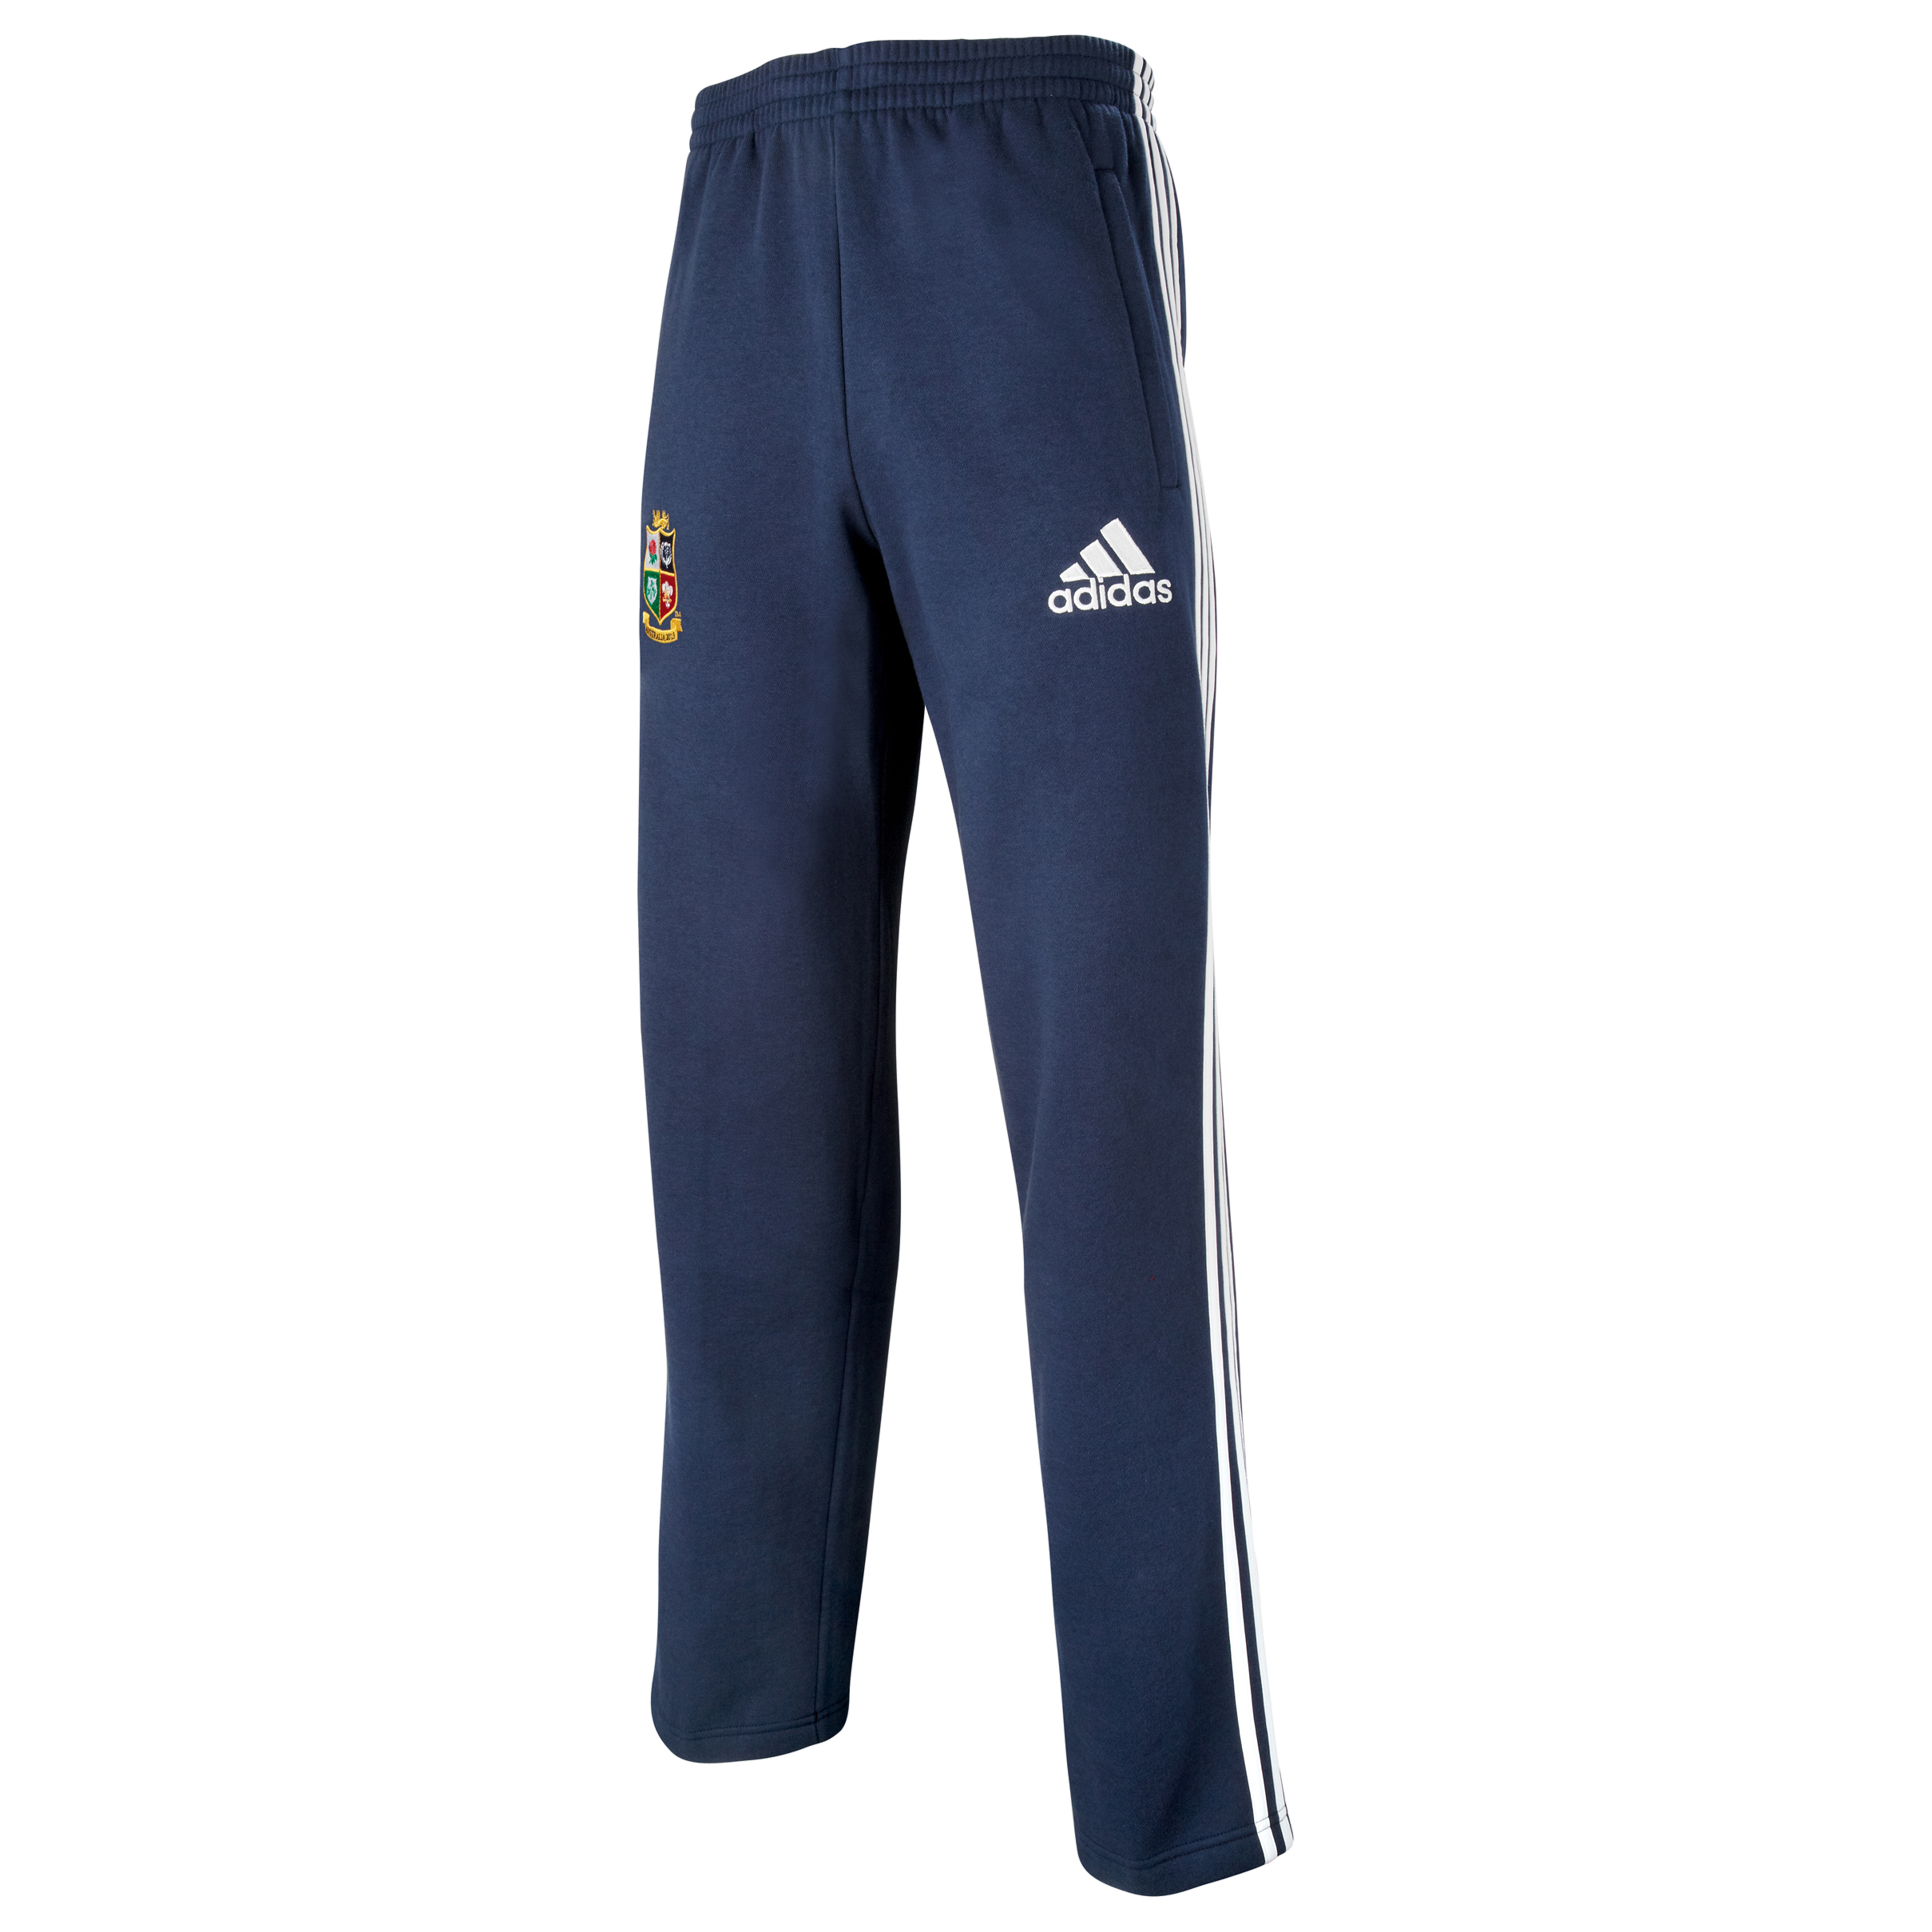 adidas British and Irish Lions Sweat Pants - Collegiate Navy/White